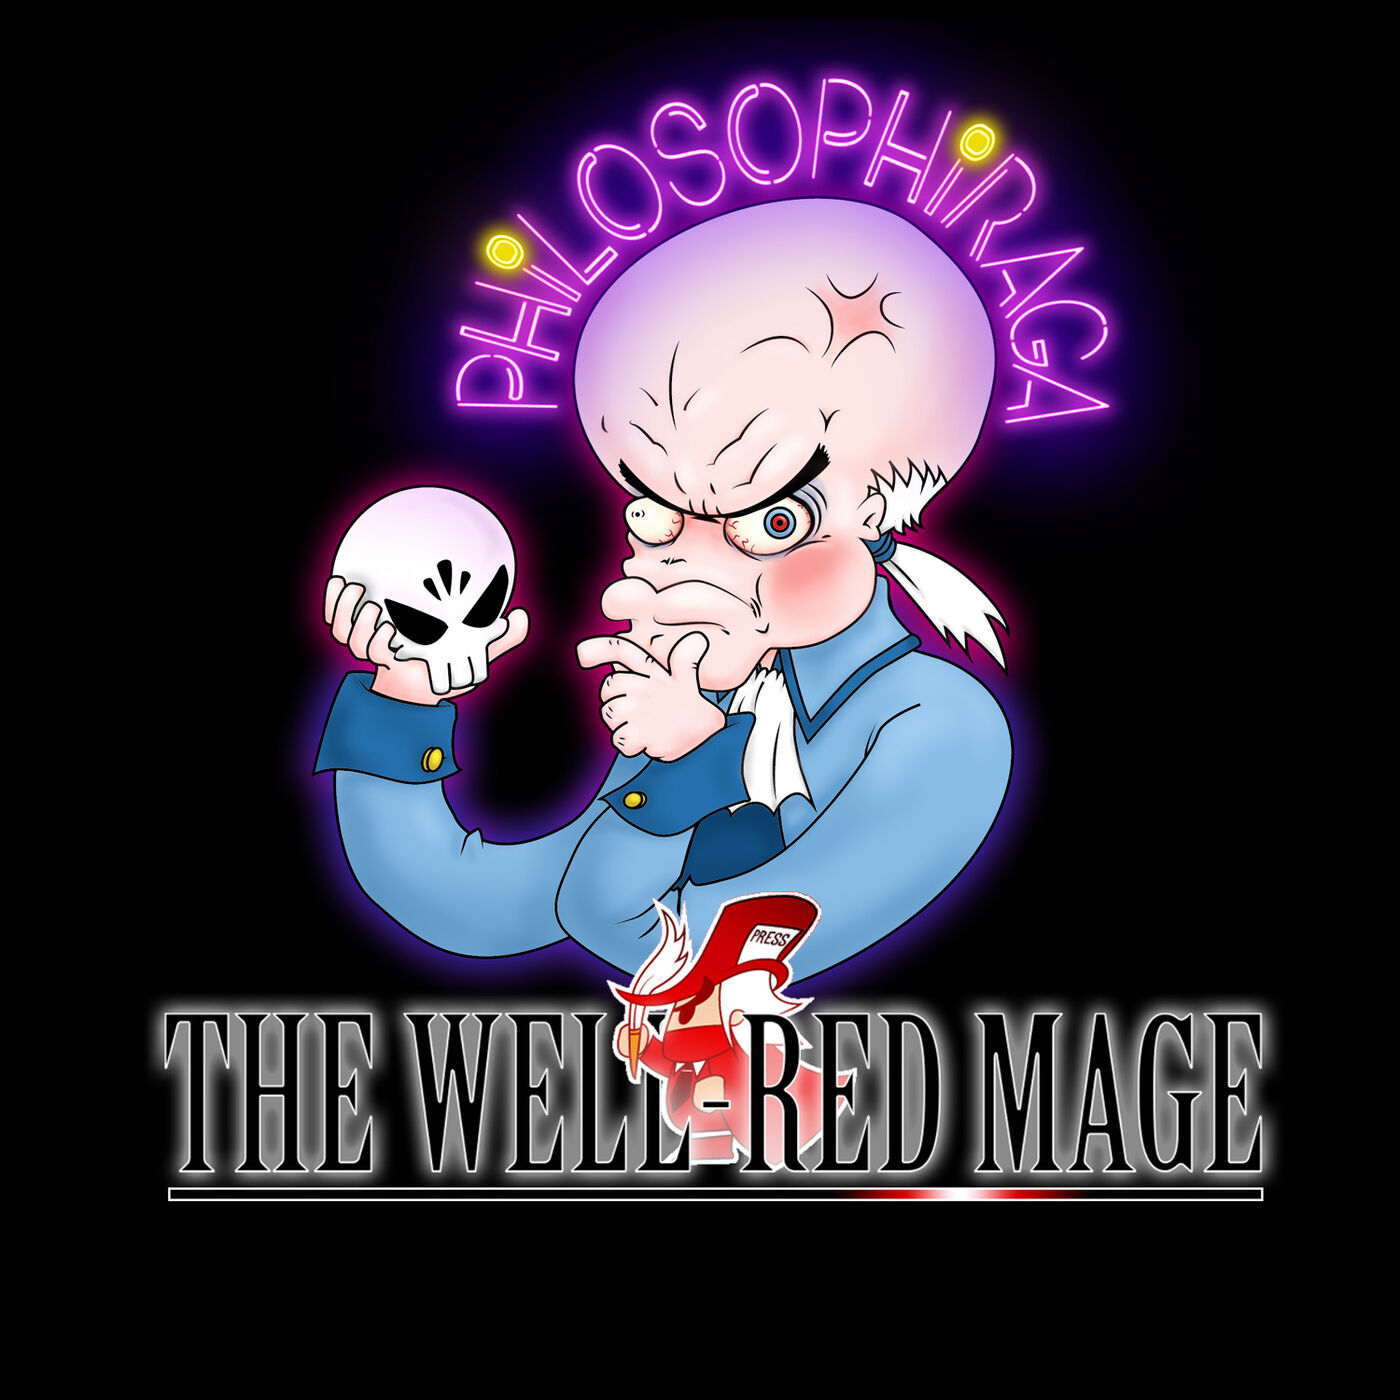 Interview with The Well-Red Mage